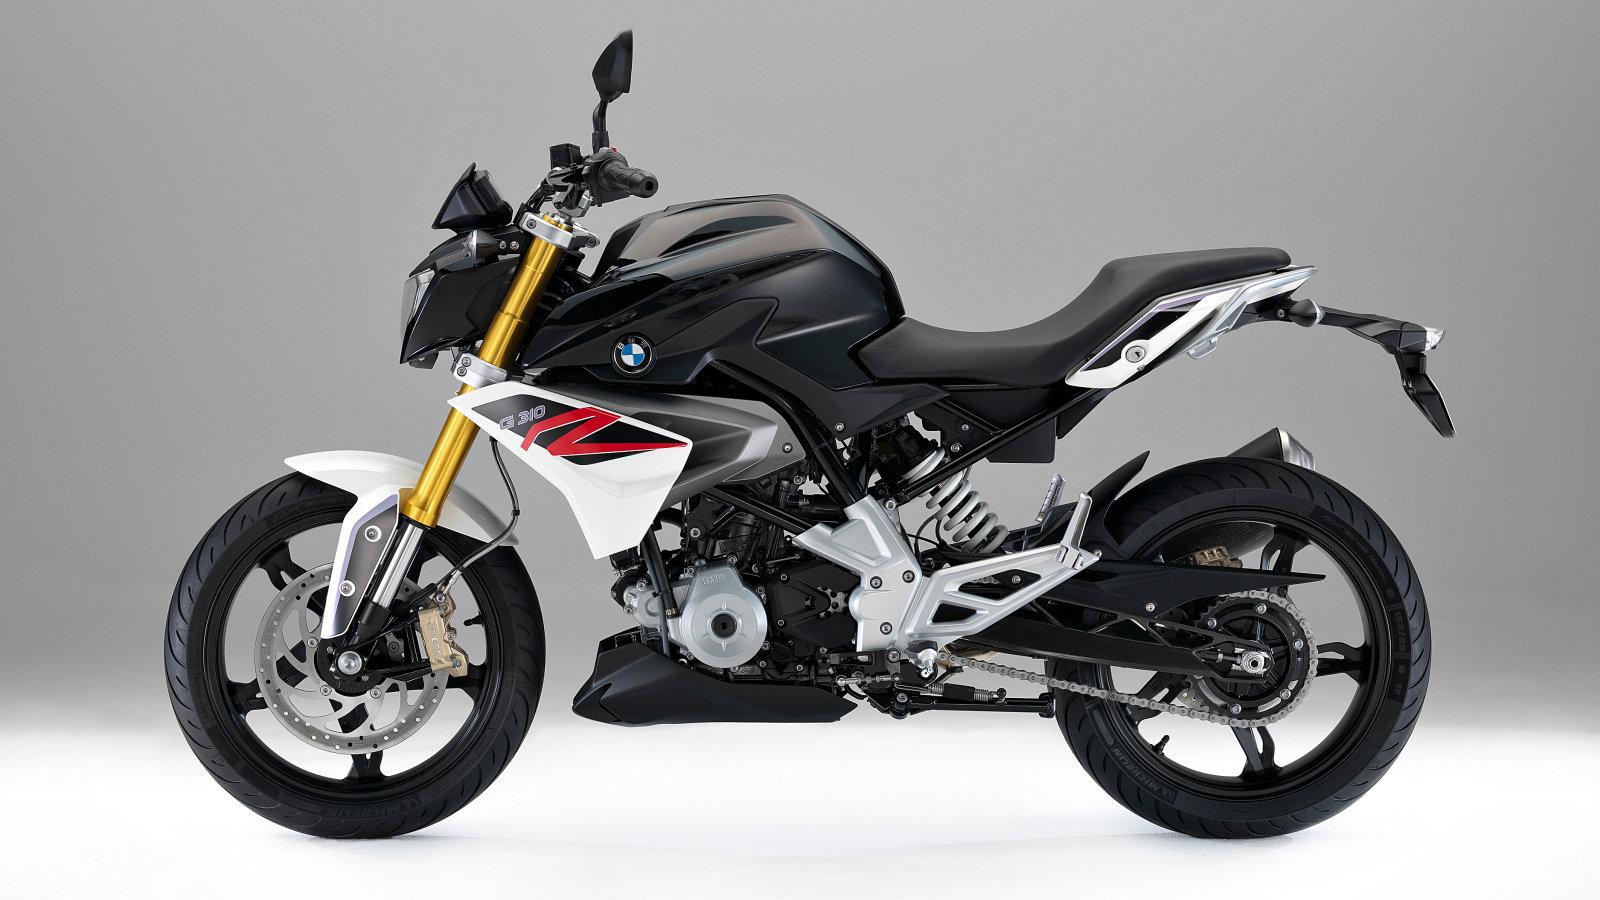 2016 bmw g 310 r picture 684735 motorcycle review. Black Bedroom Furniture Sets. Home Design Ideas